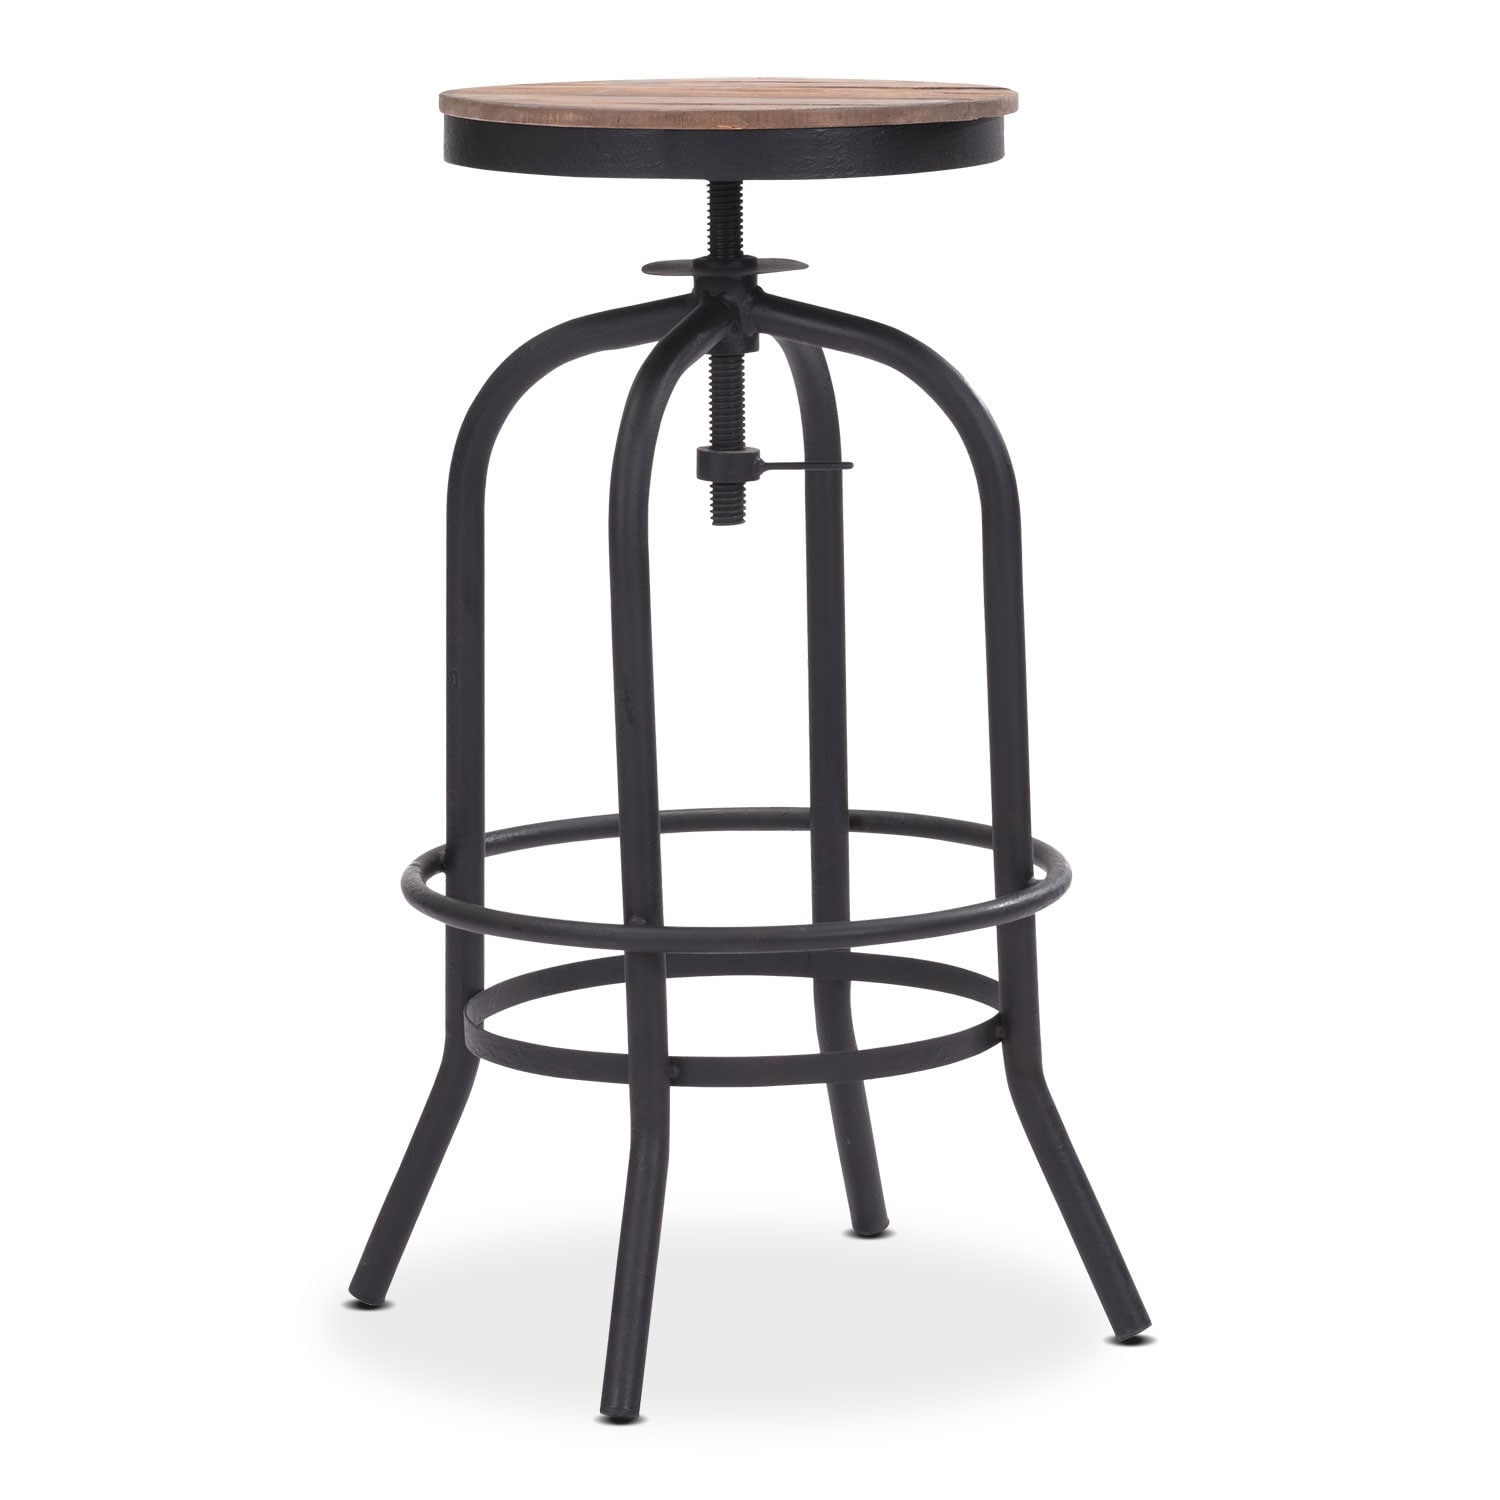 Dining Room Furniture - Elston Adjustable Backless Barstool - Antiqued Black